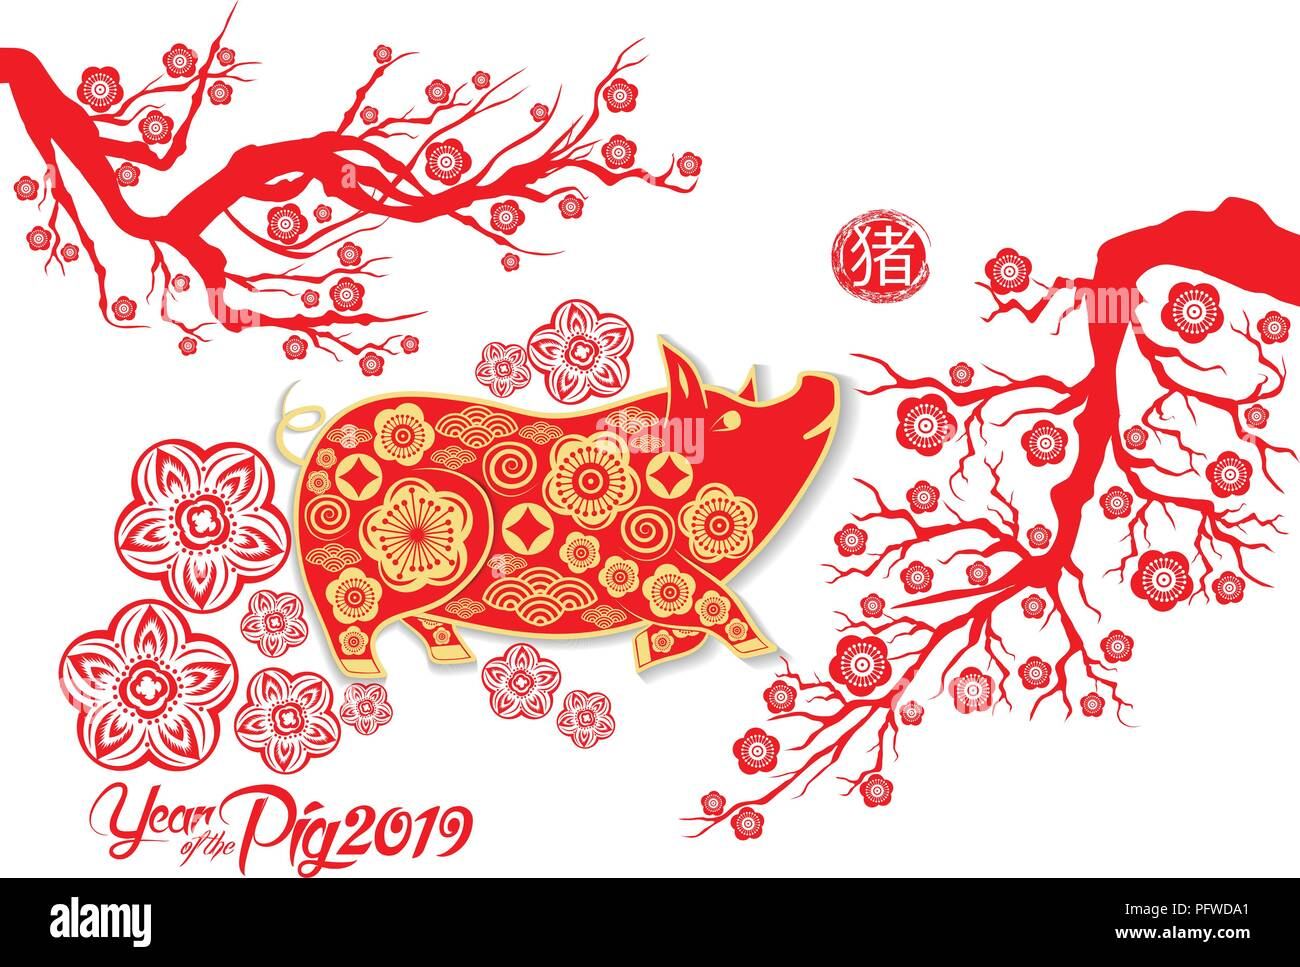 Happy Chinese New Year 2019 Card Year Of Pig Hieroglyph Pig Stock